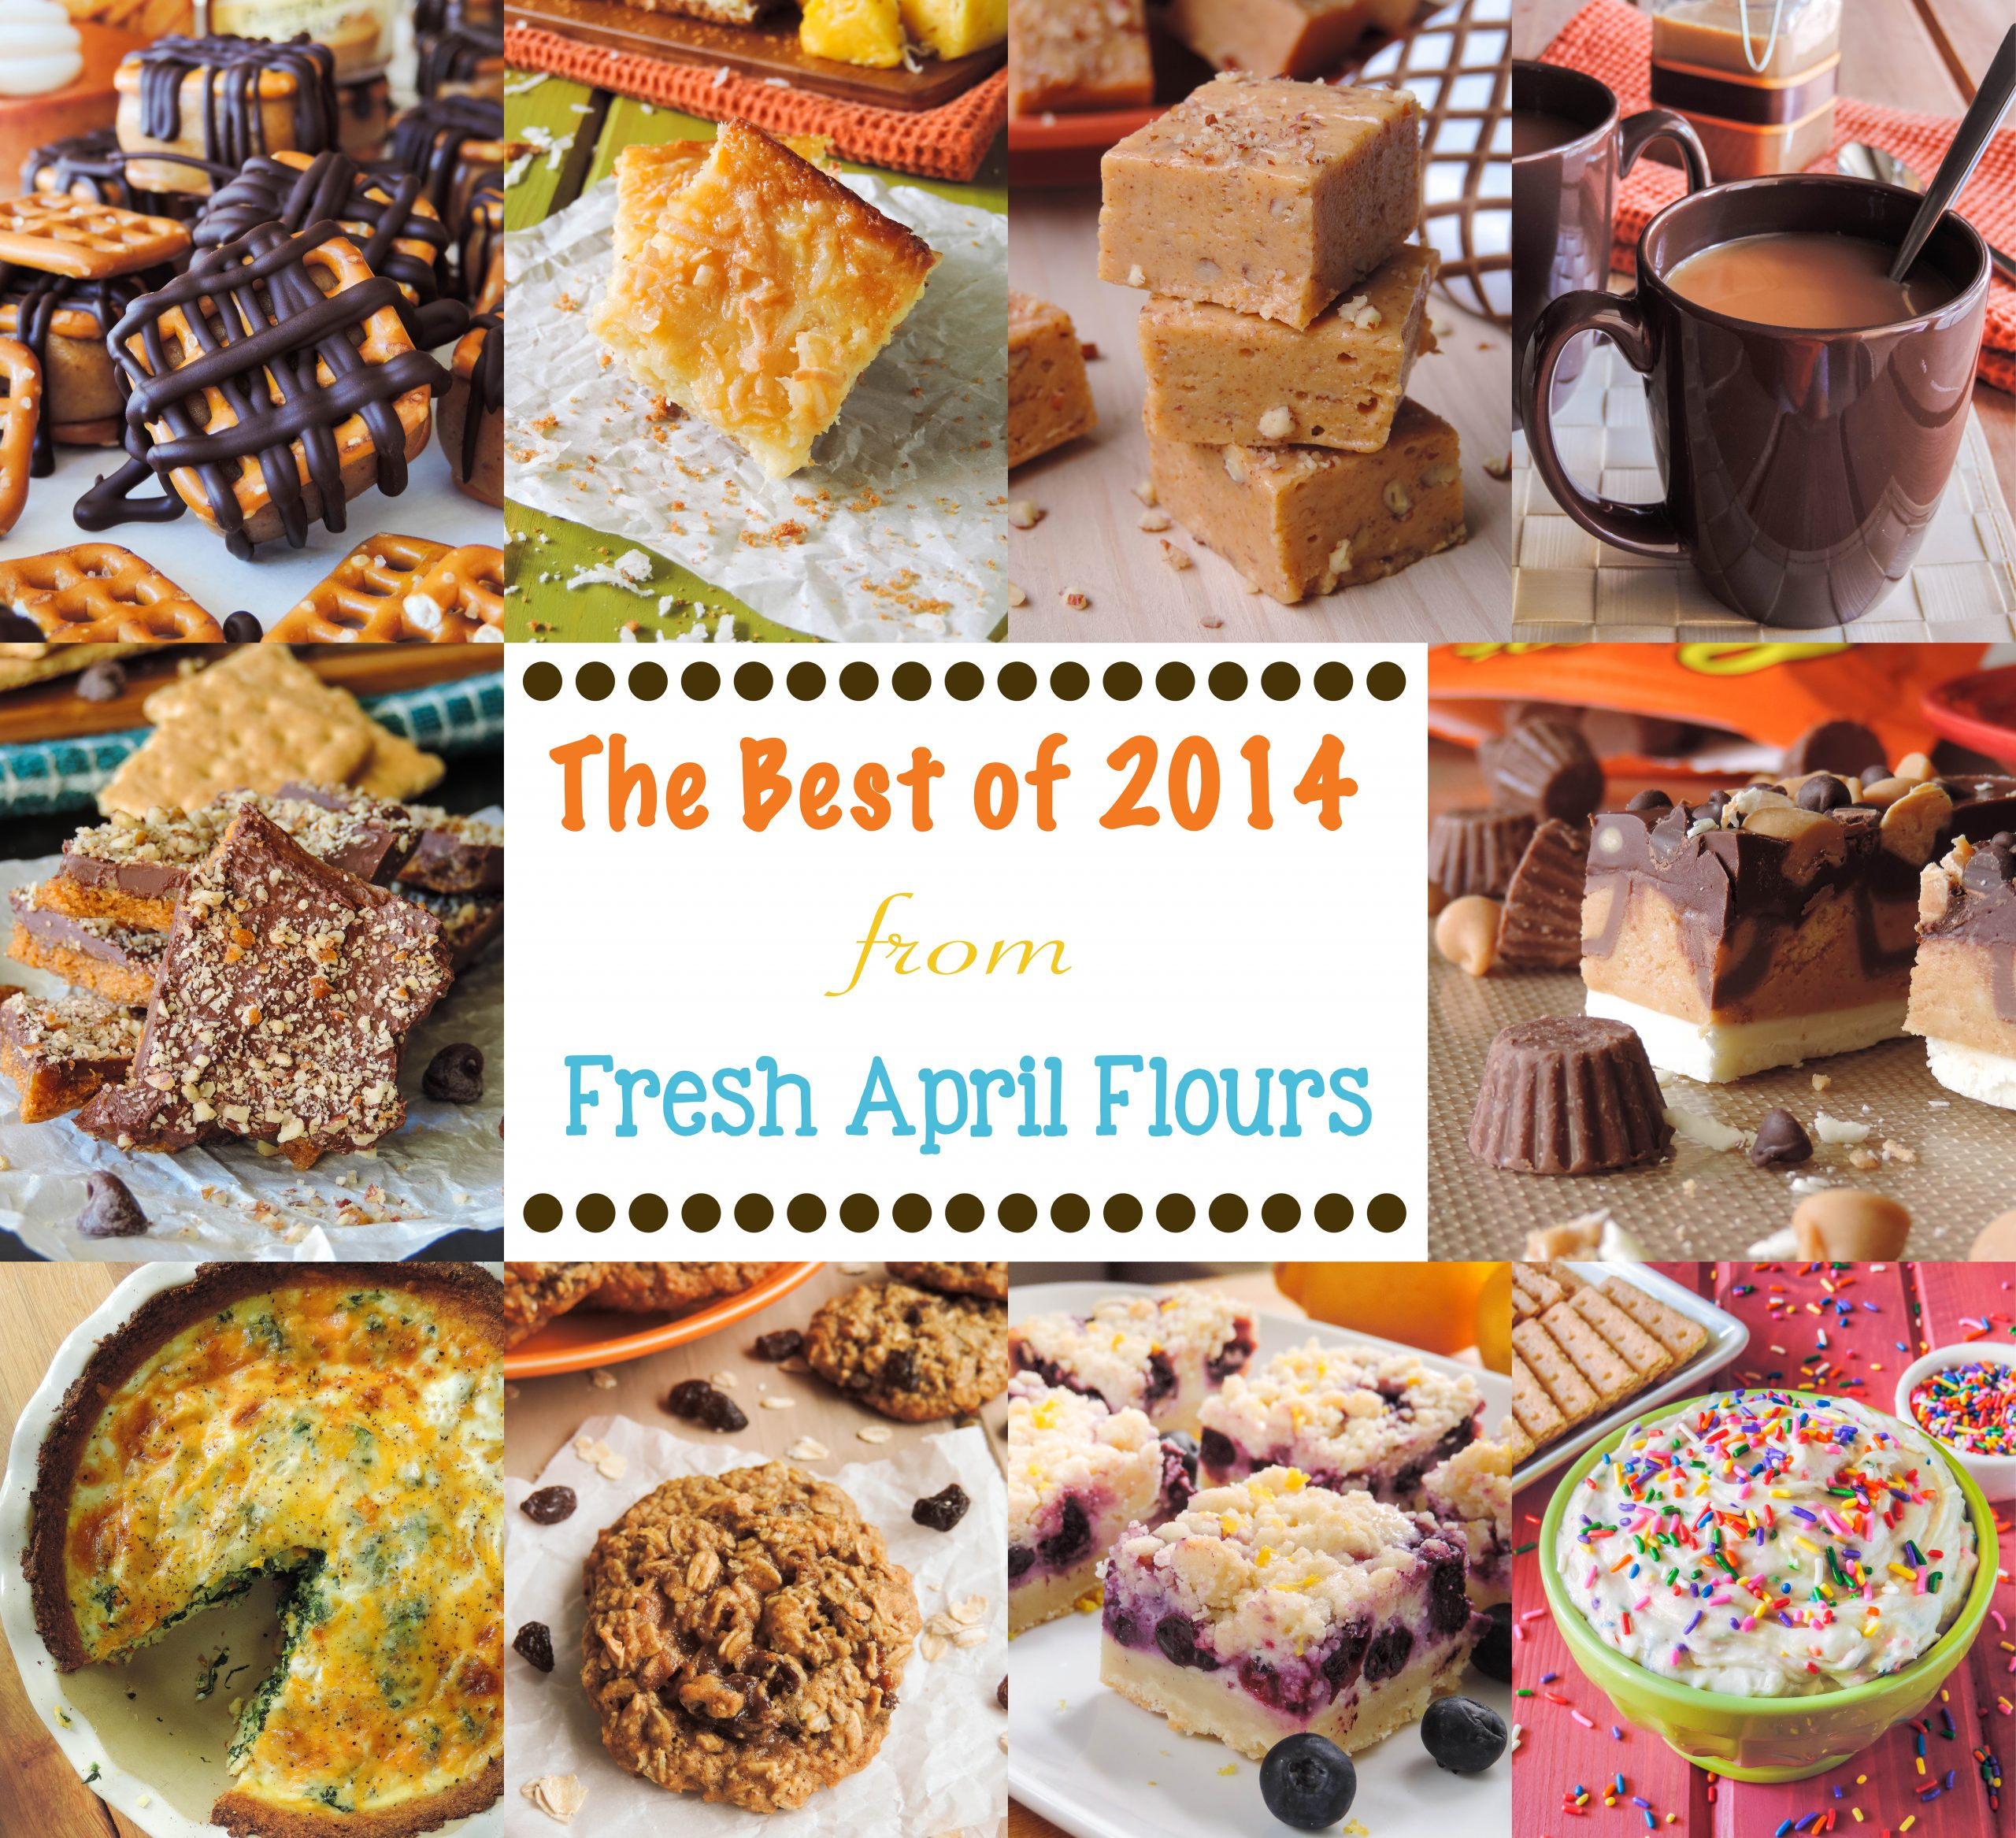 The Best of 2014 from Fresh April Flours